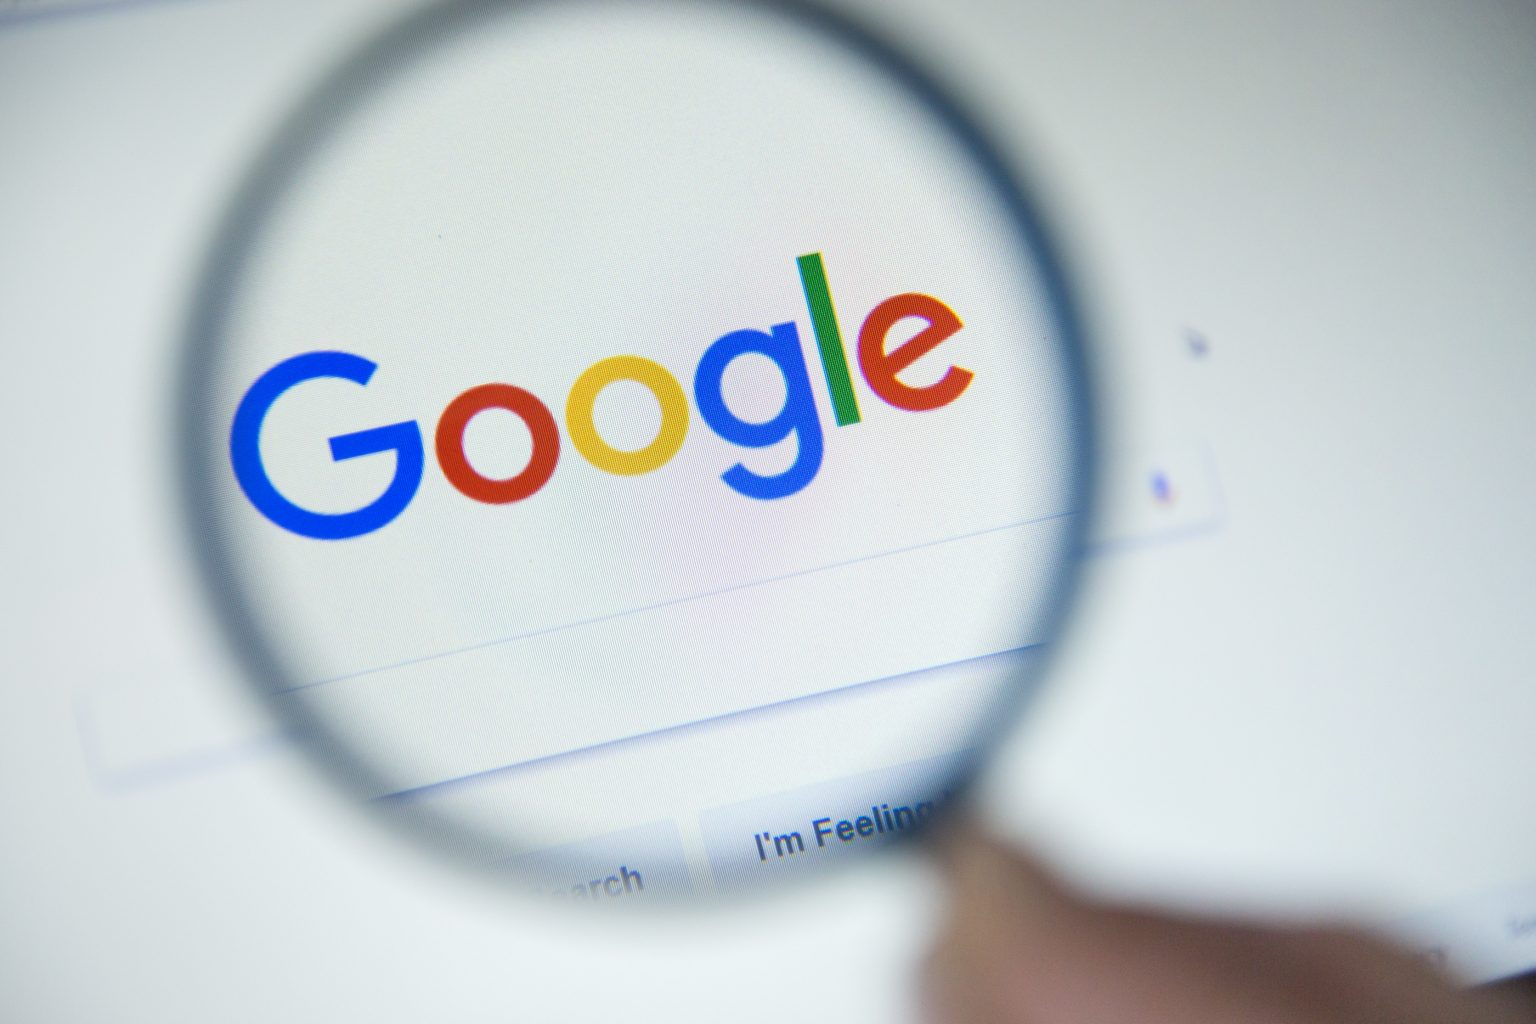 Censorship? Google deleted links to news stories on crime, corruption based on phony copyright claims